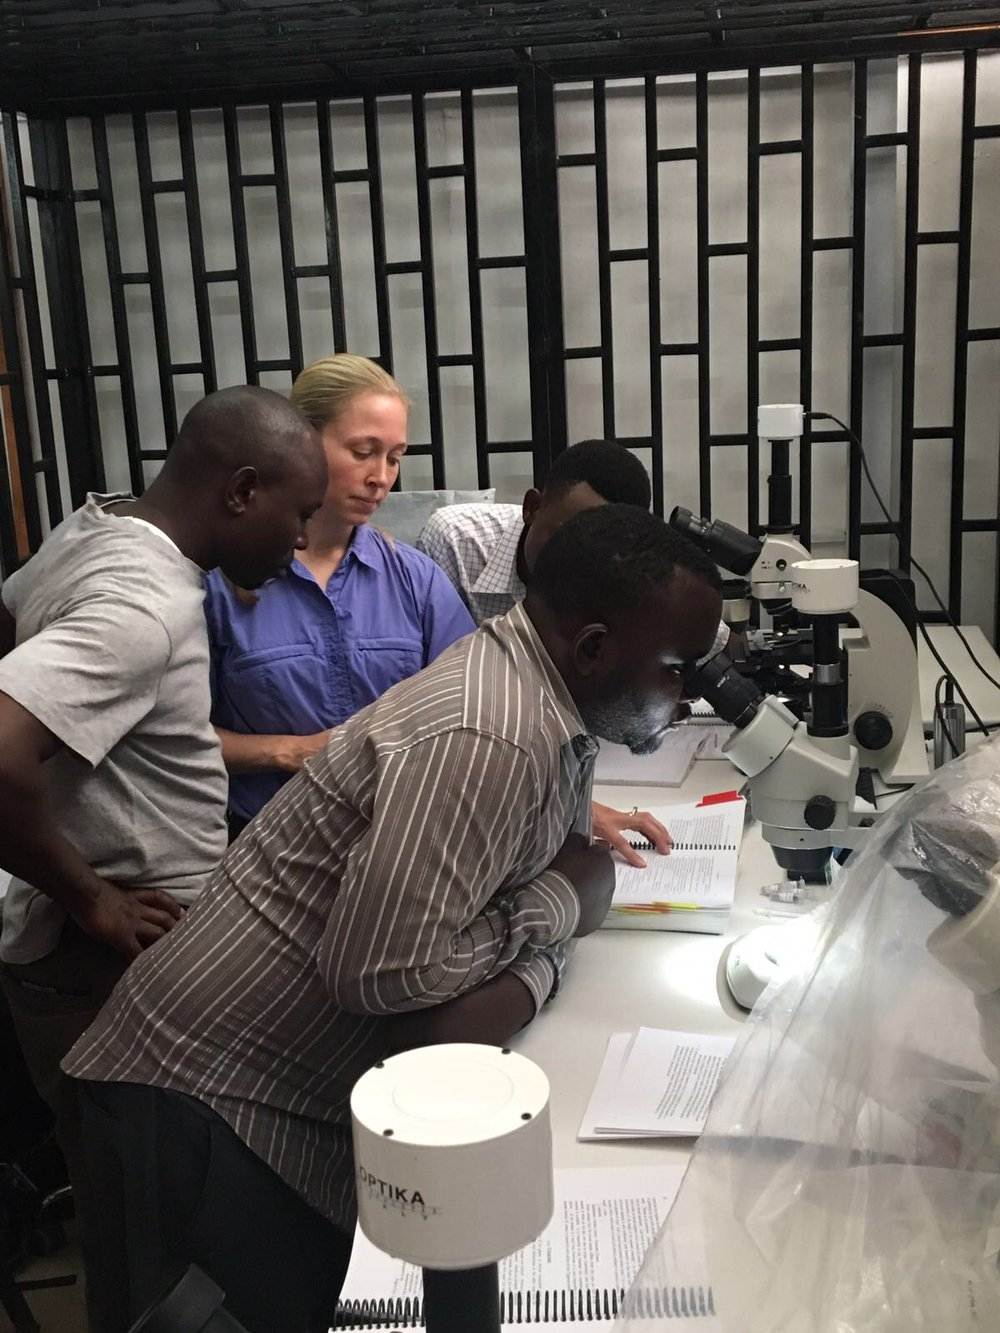 Microscope work, essential for mosquito ID.